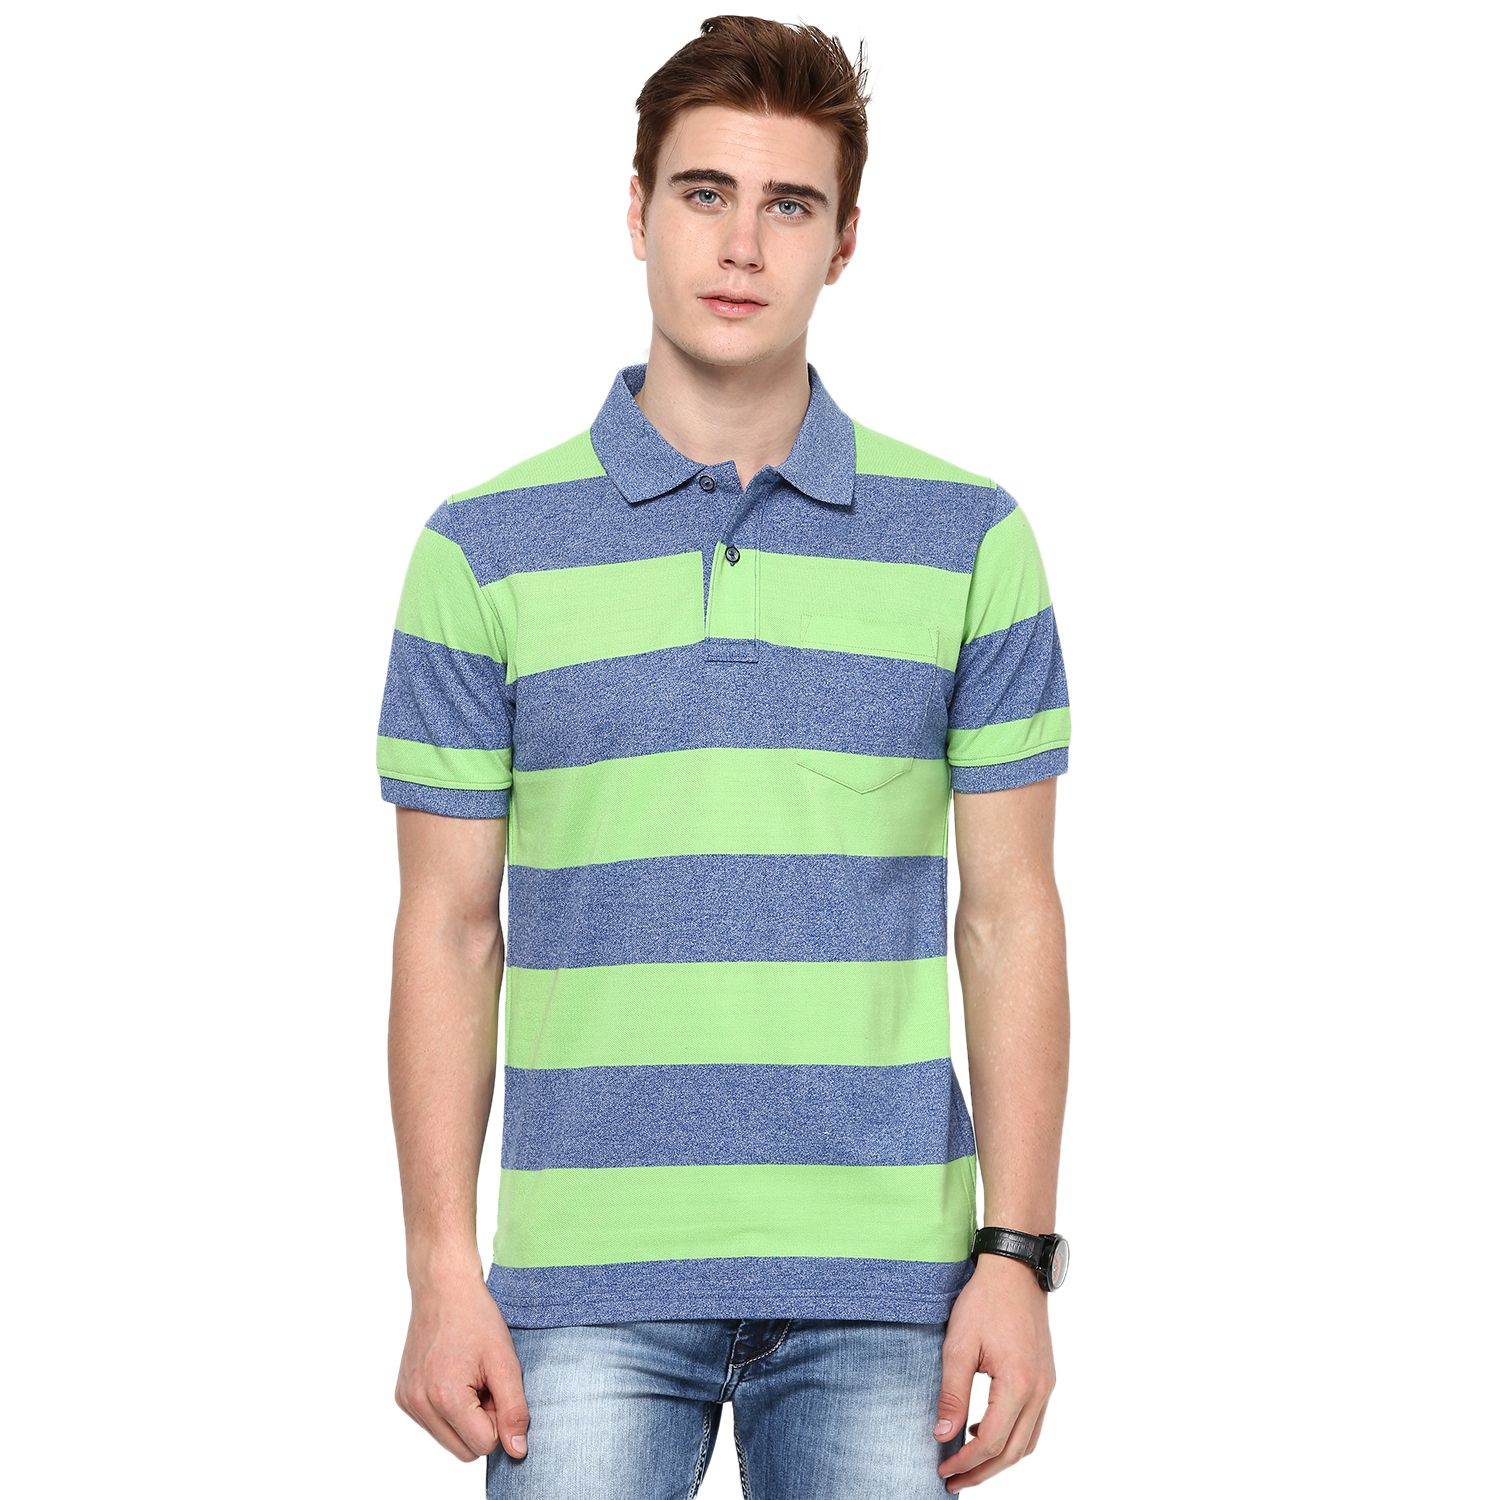 Neon Green And Light Shade Blue Mudo Rugby Polo T Shirt Mens Polo